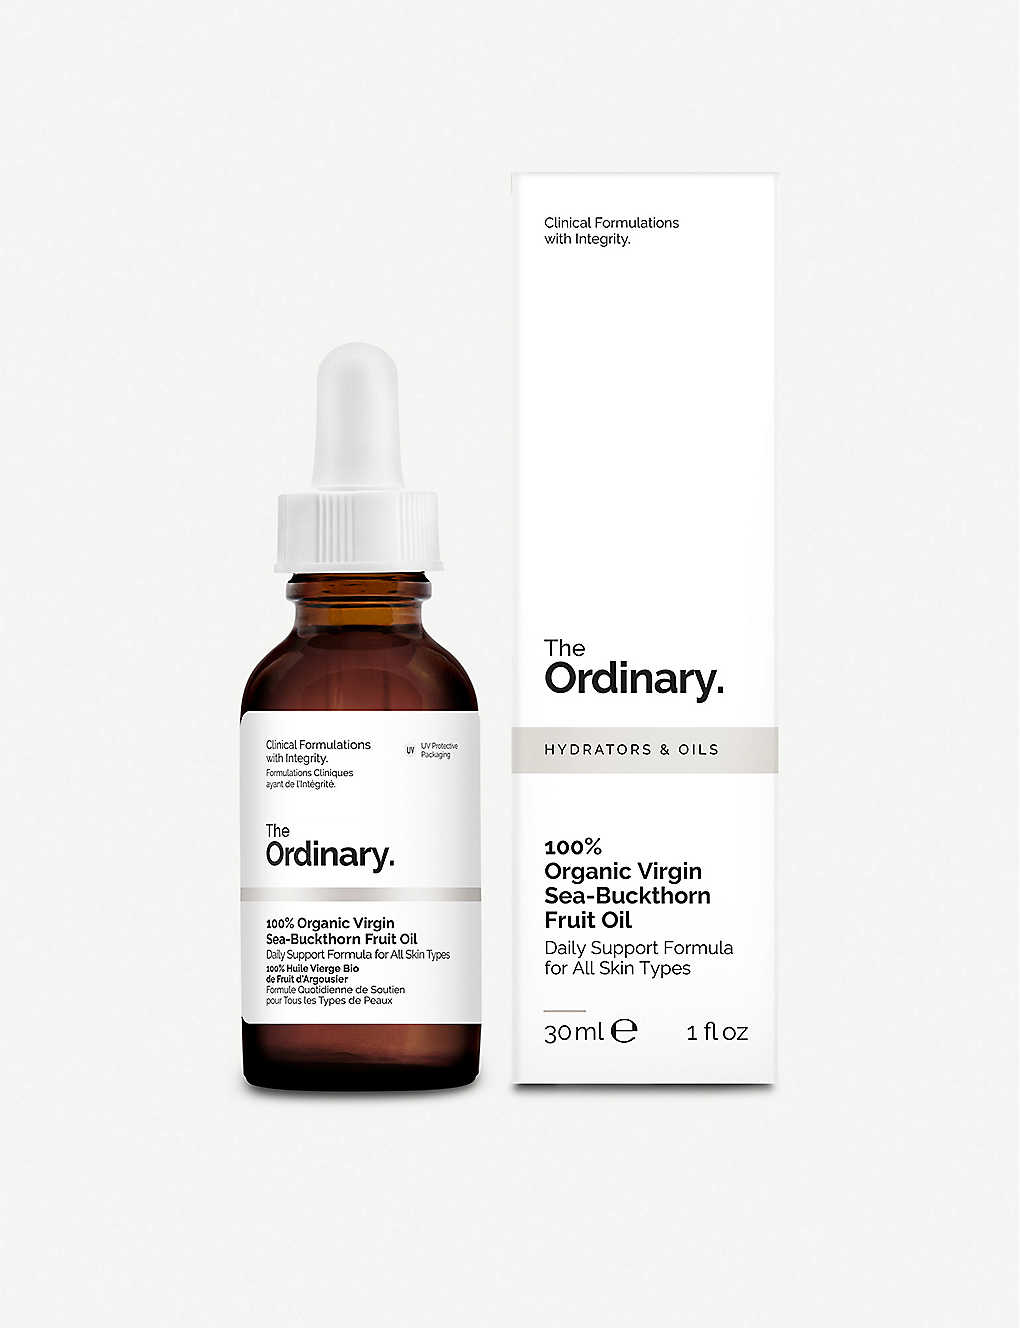 THE ORDINARY: 100% Organic Virgin Sea-Buckthorn Fruit Oil 30ml